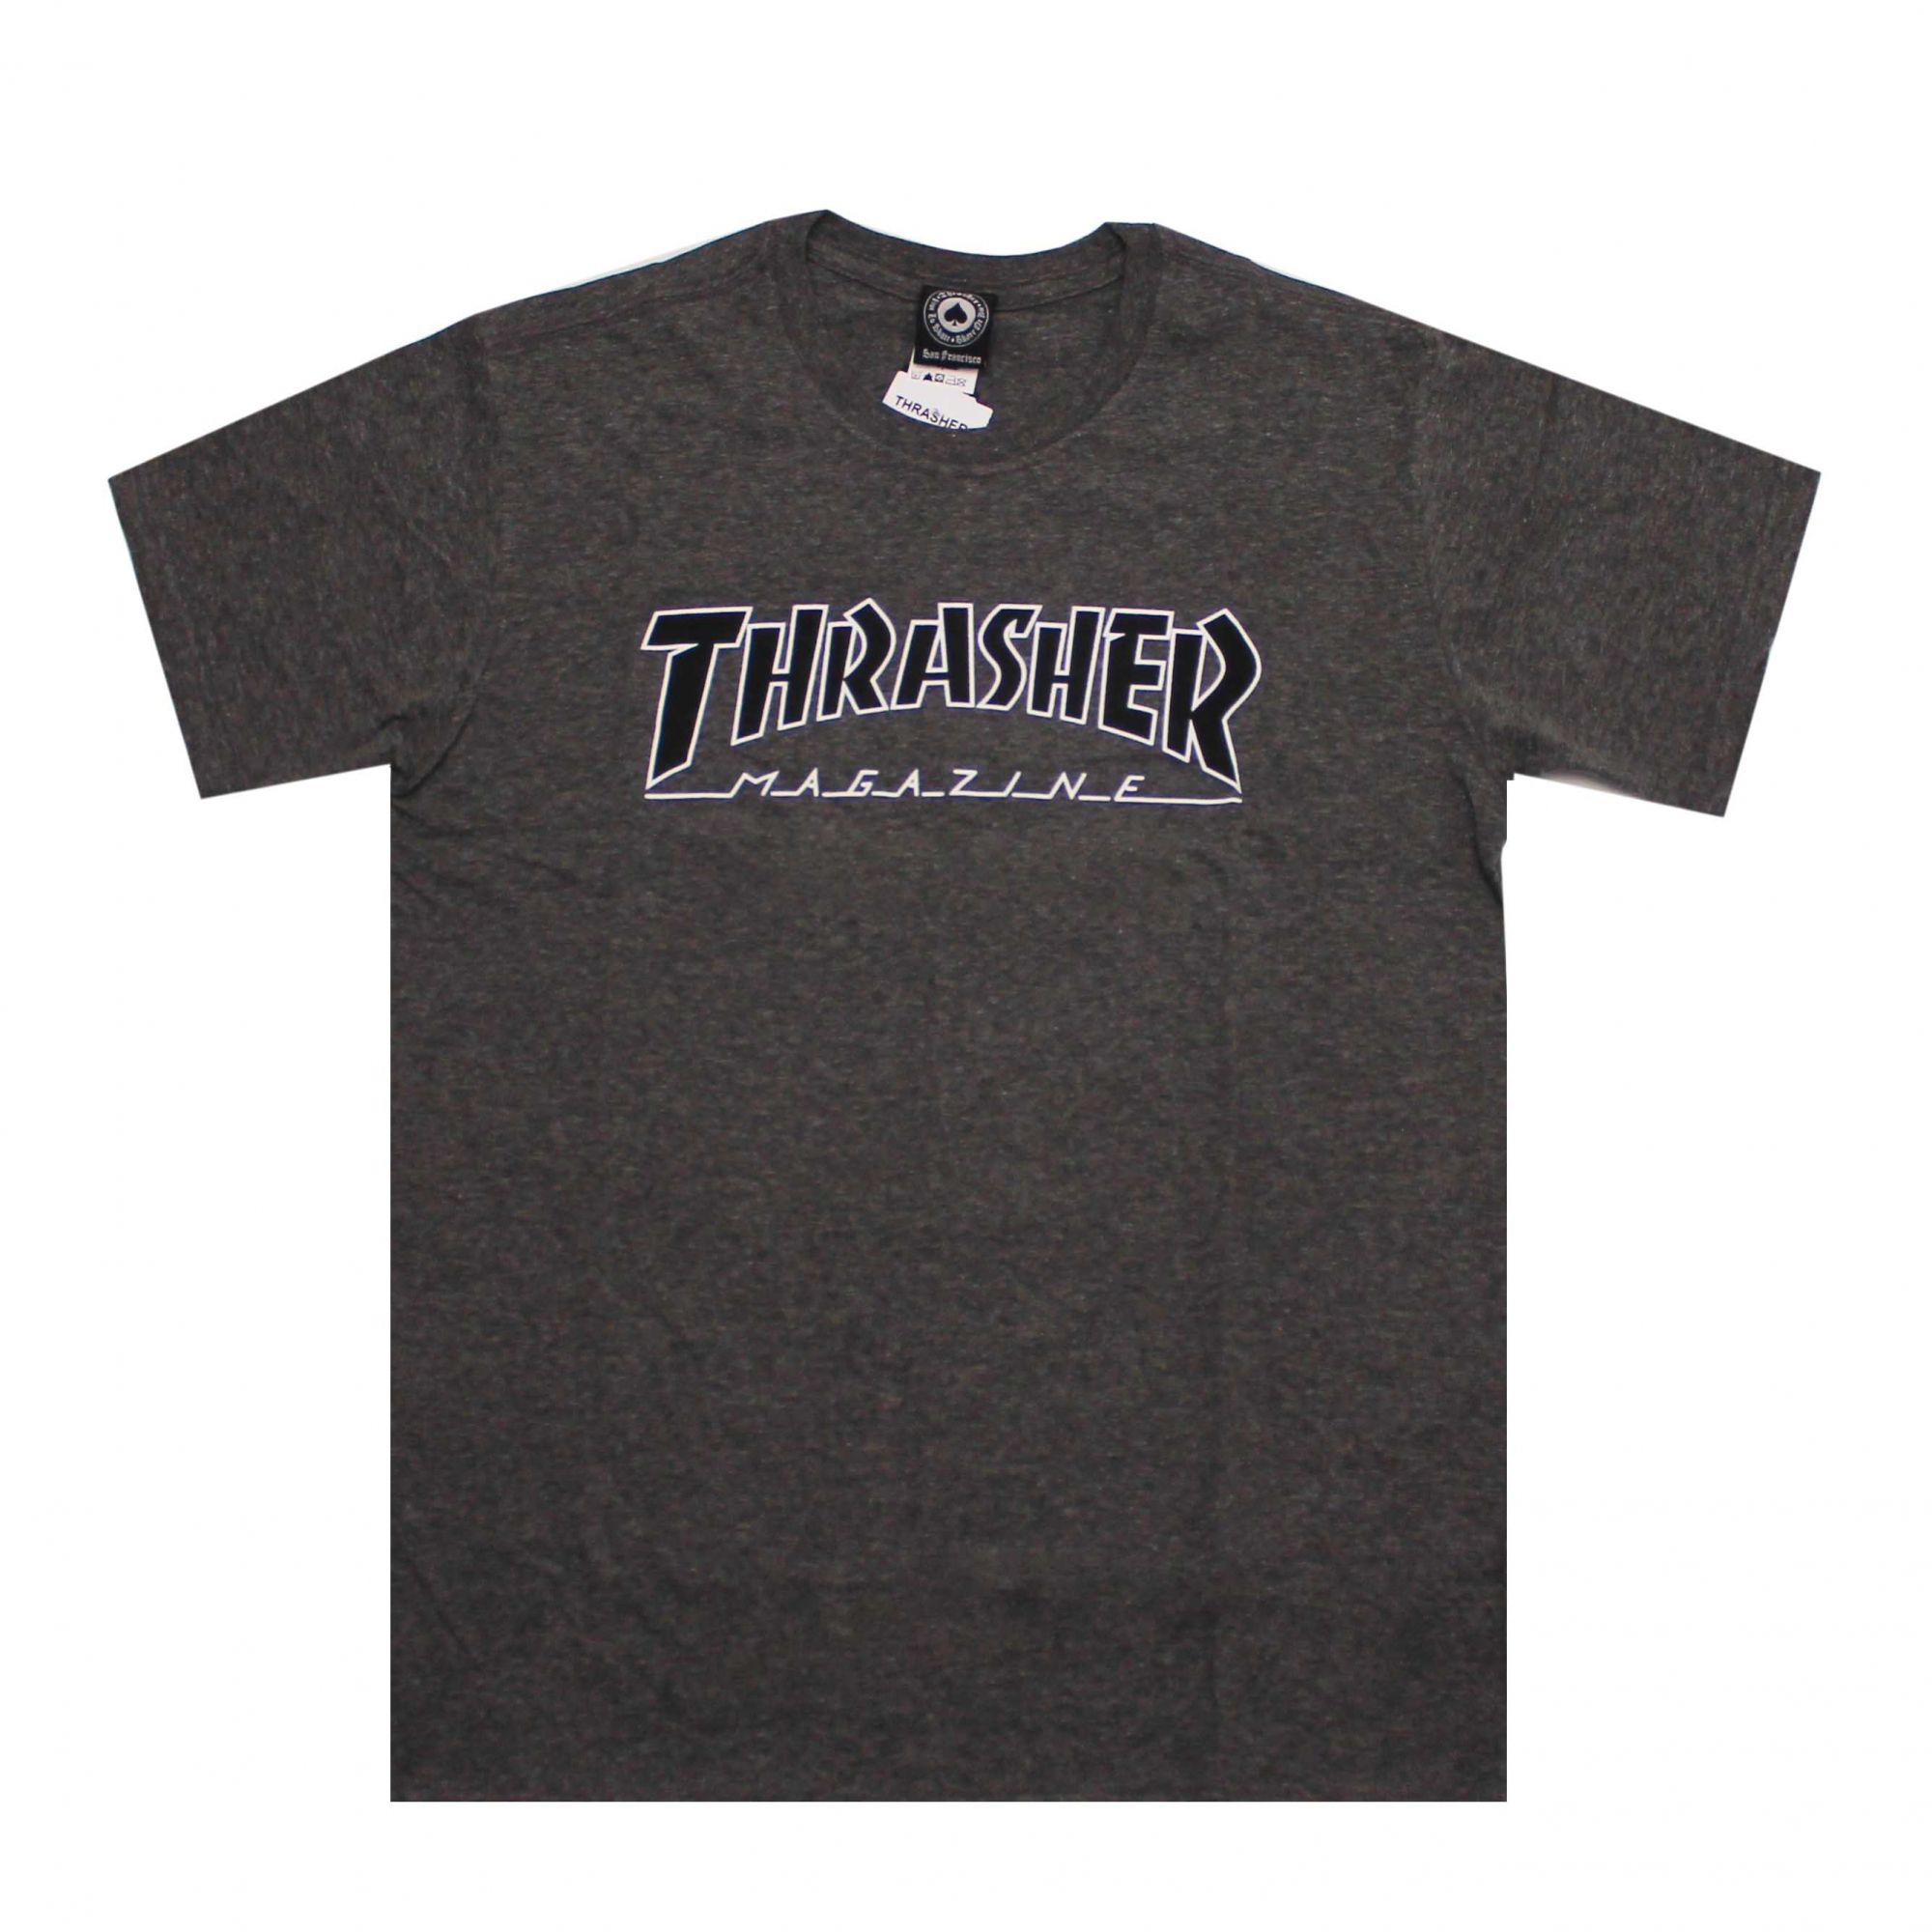 Camiseta Thrasher Magazine Black Outlined - Cinza Chumbo